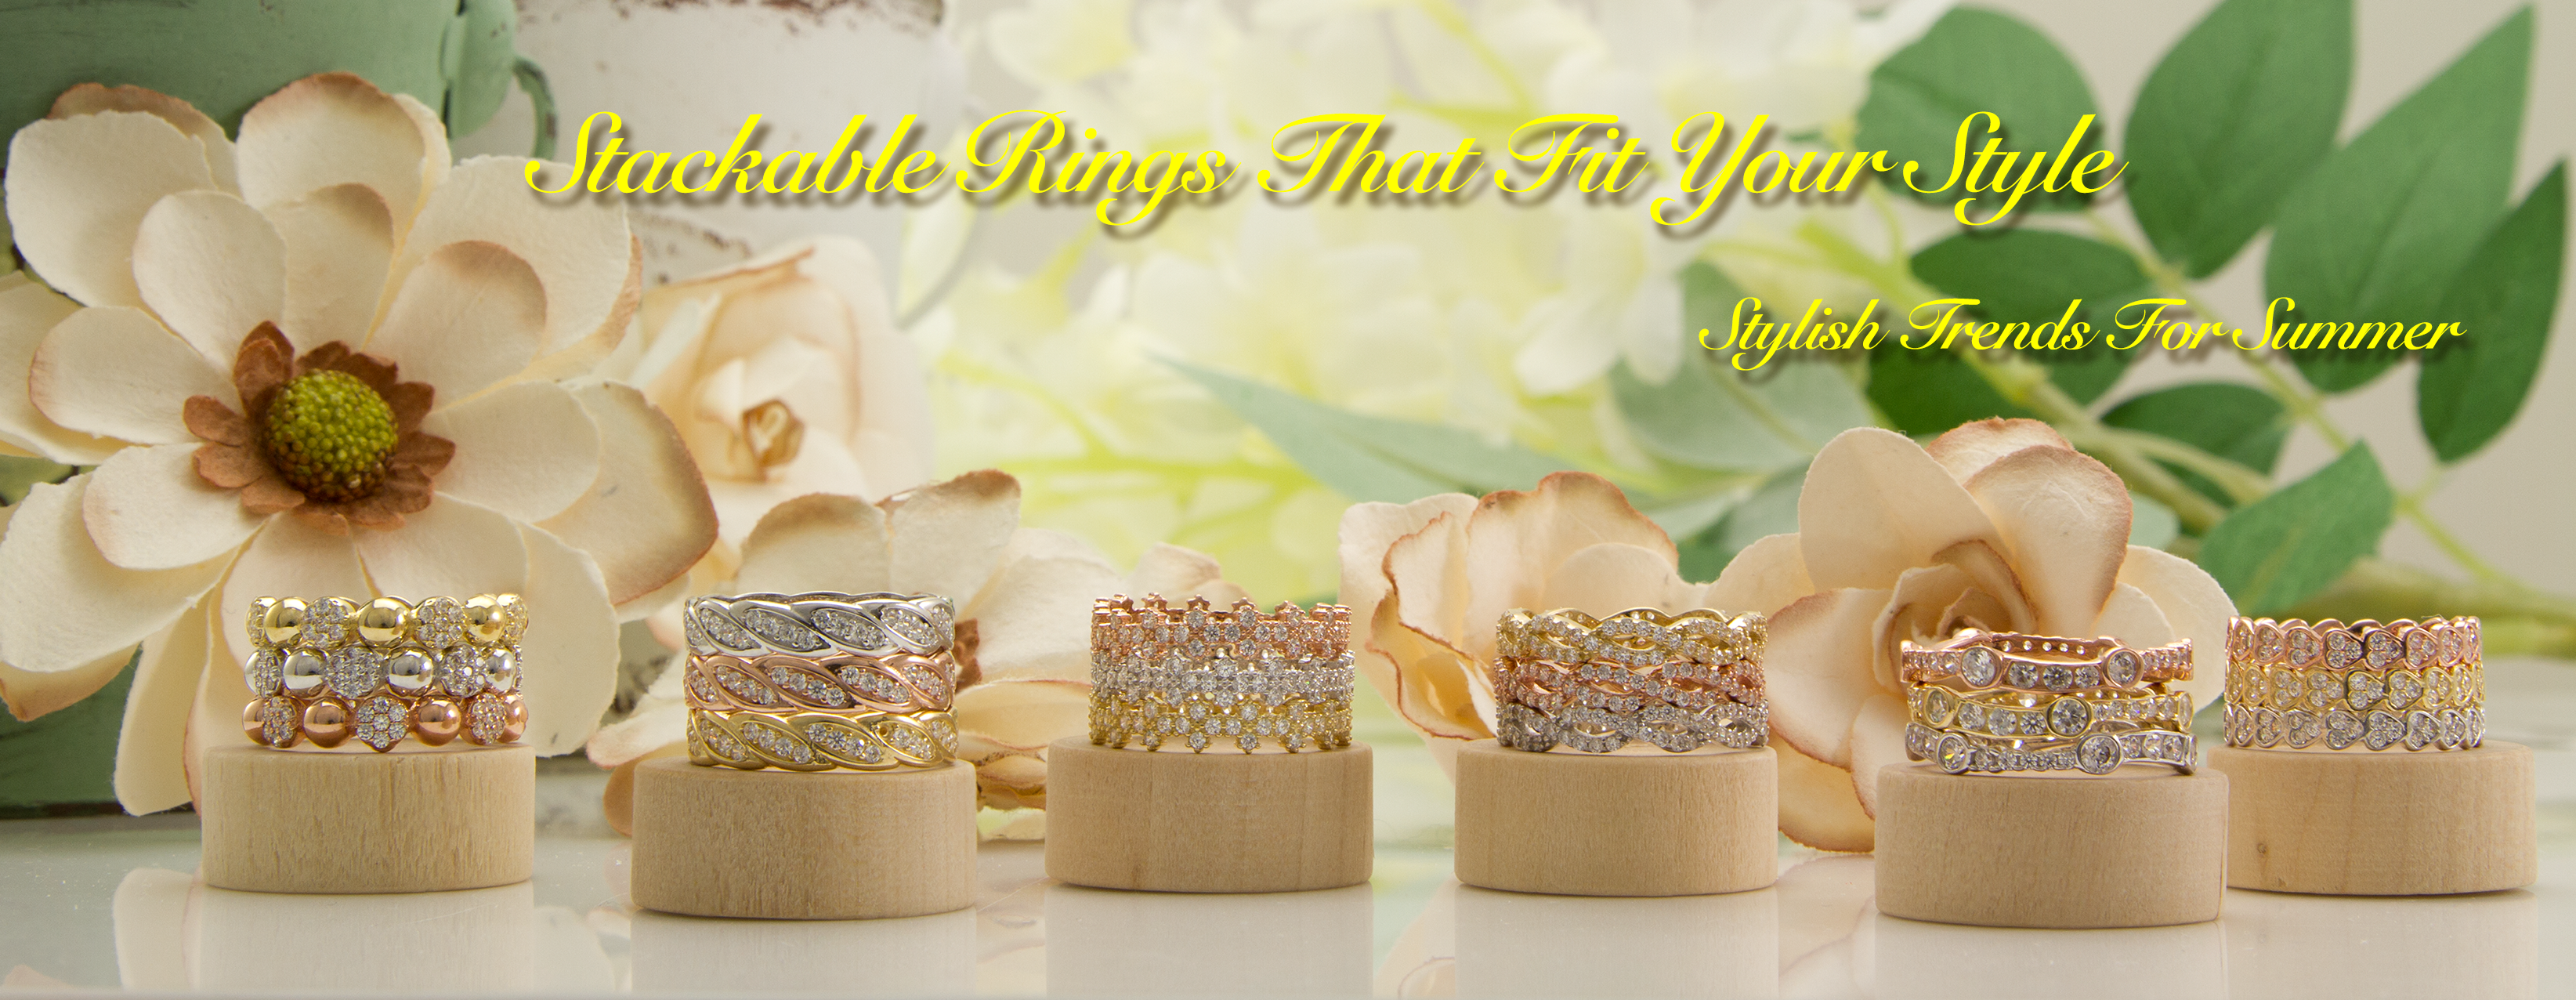 Line Gold Inc - 14K Gold Wholesale Jewelry Distributor in